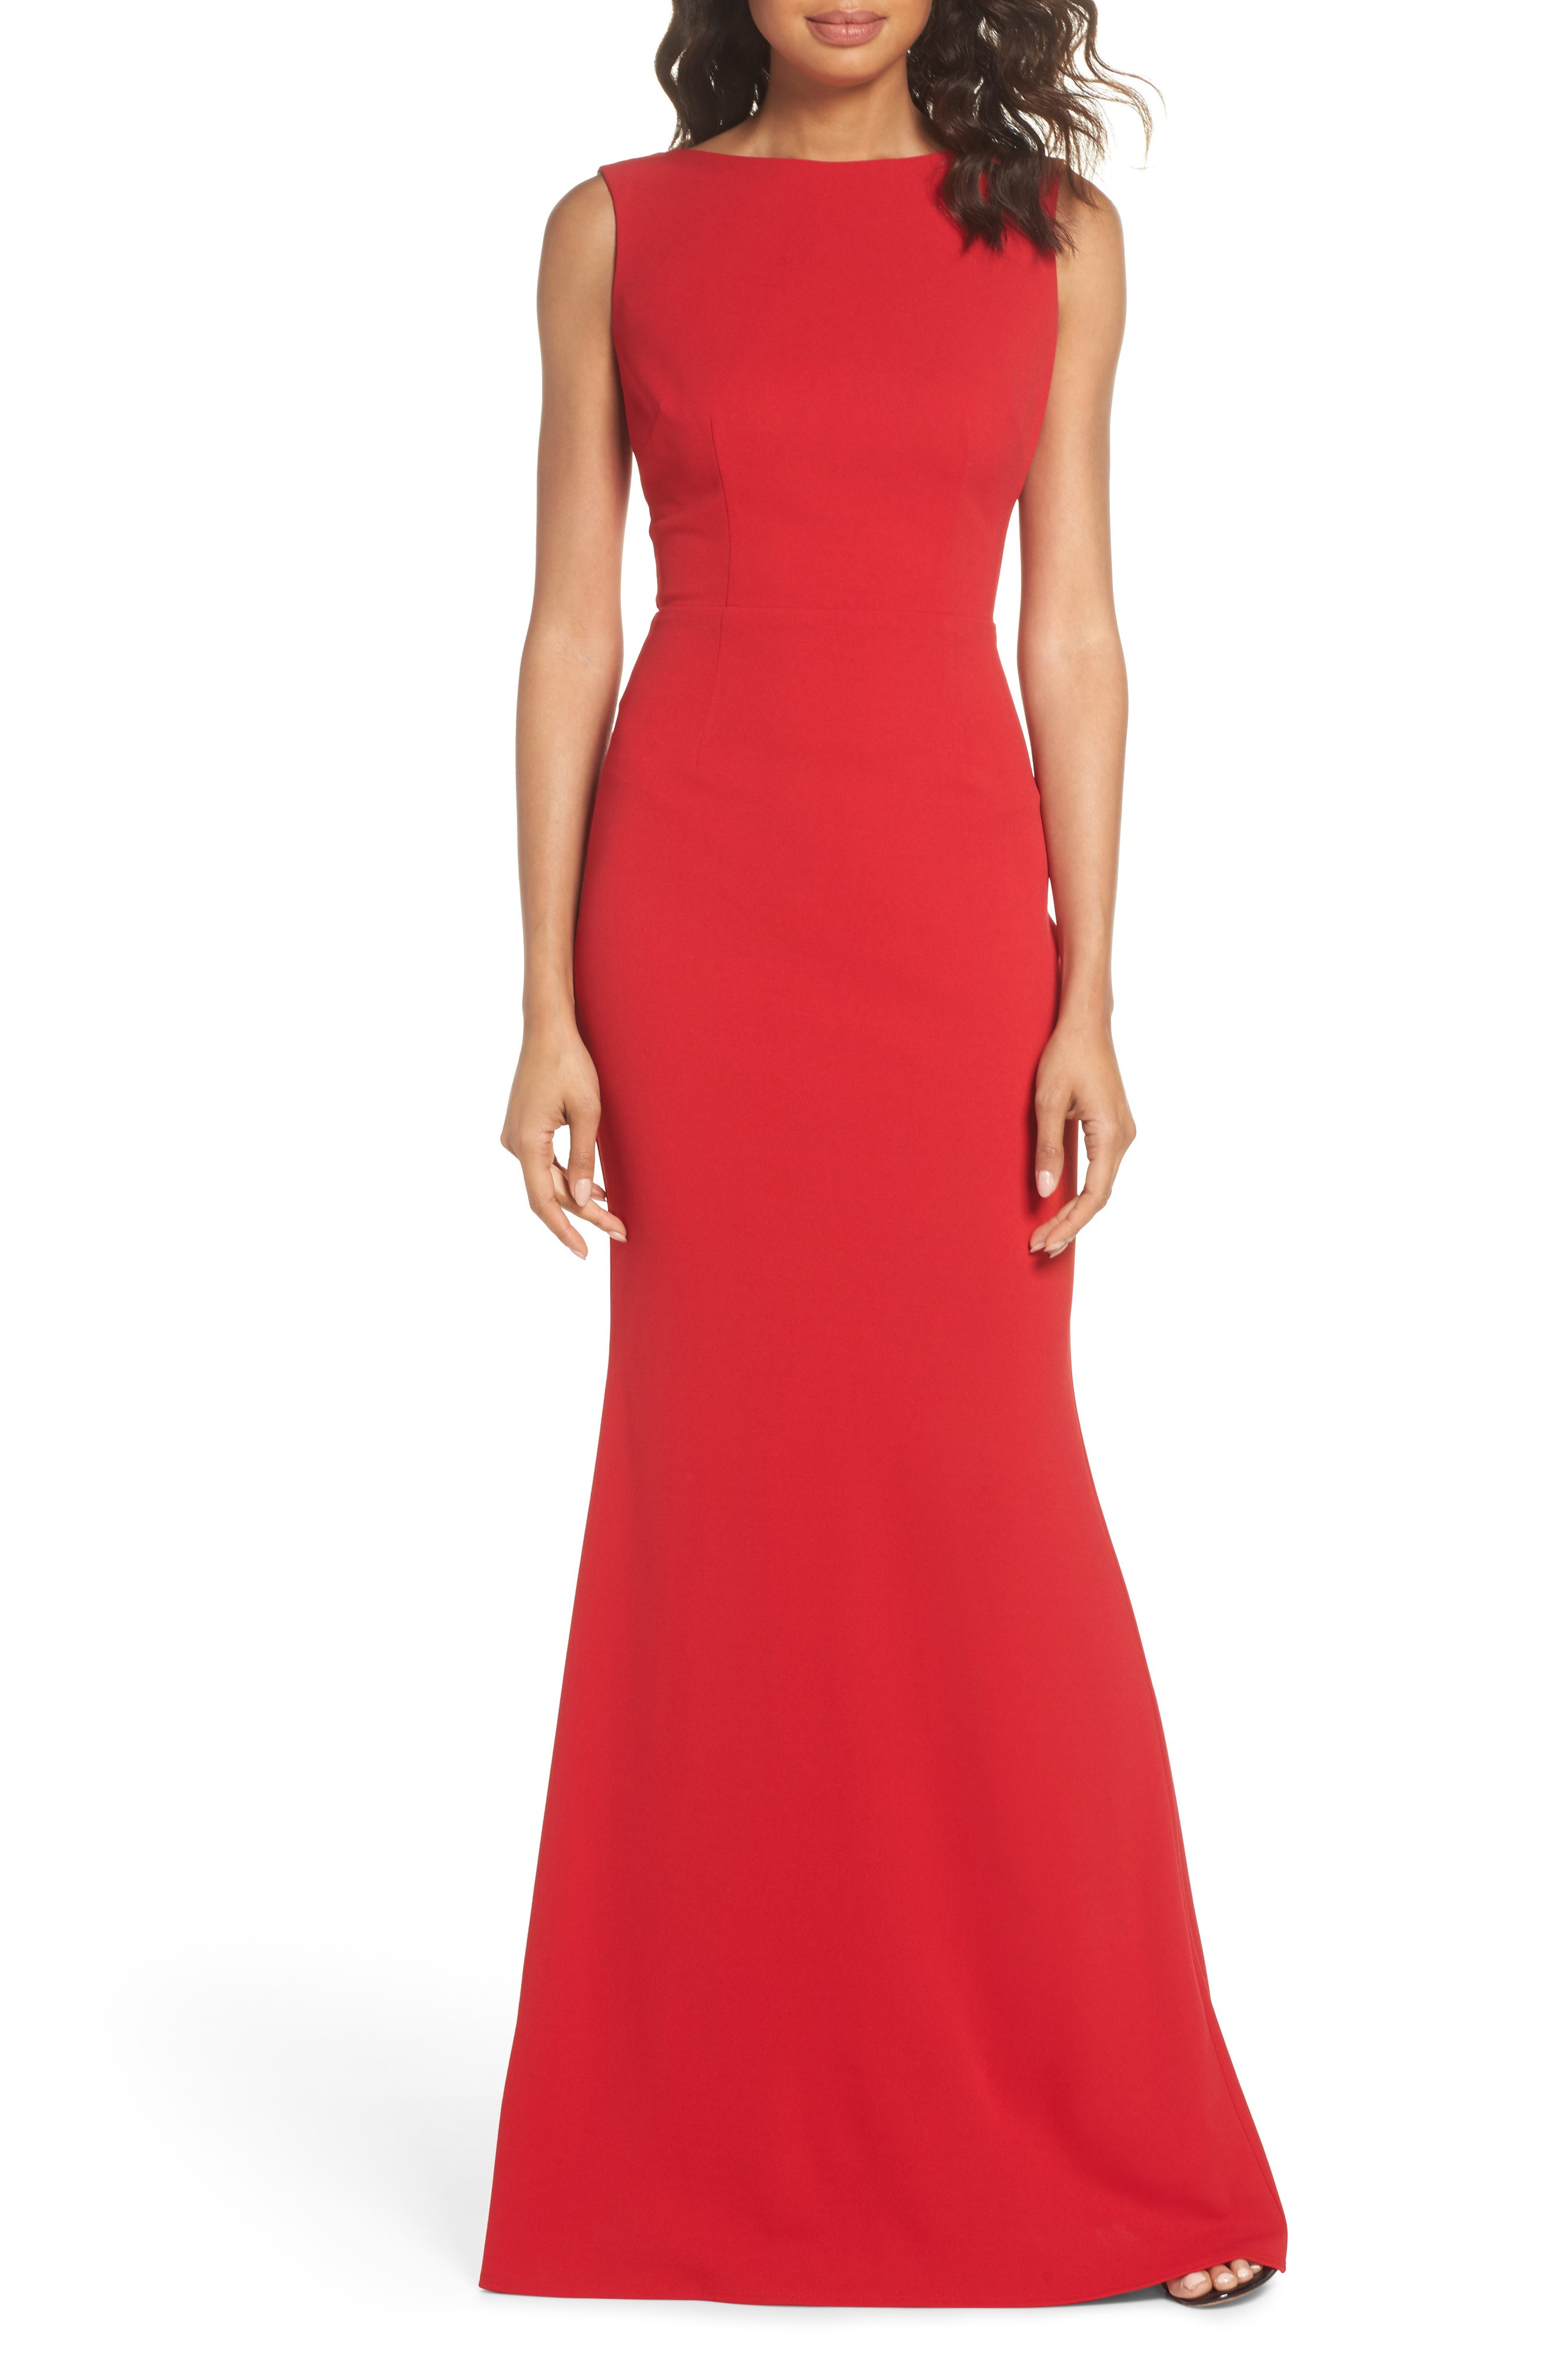 KATIE MAY Drape Back Crepe Red Gown